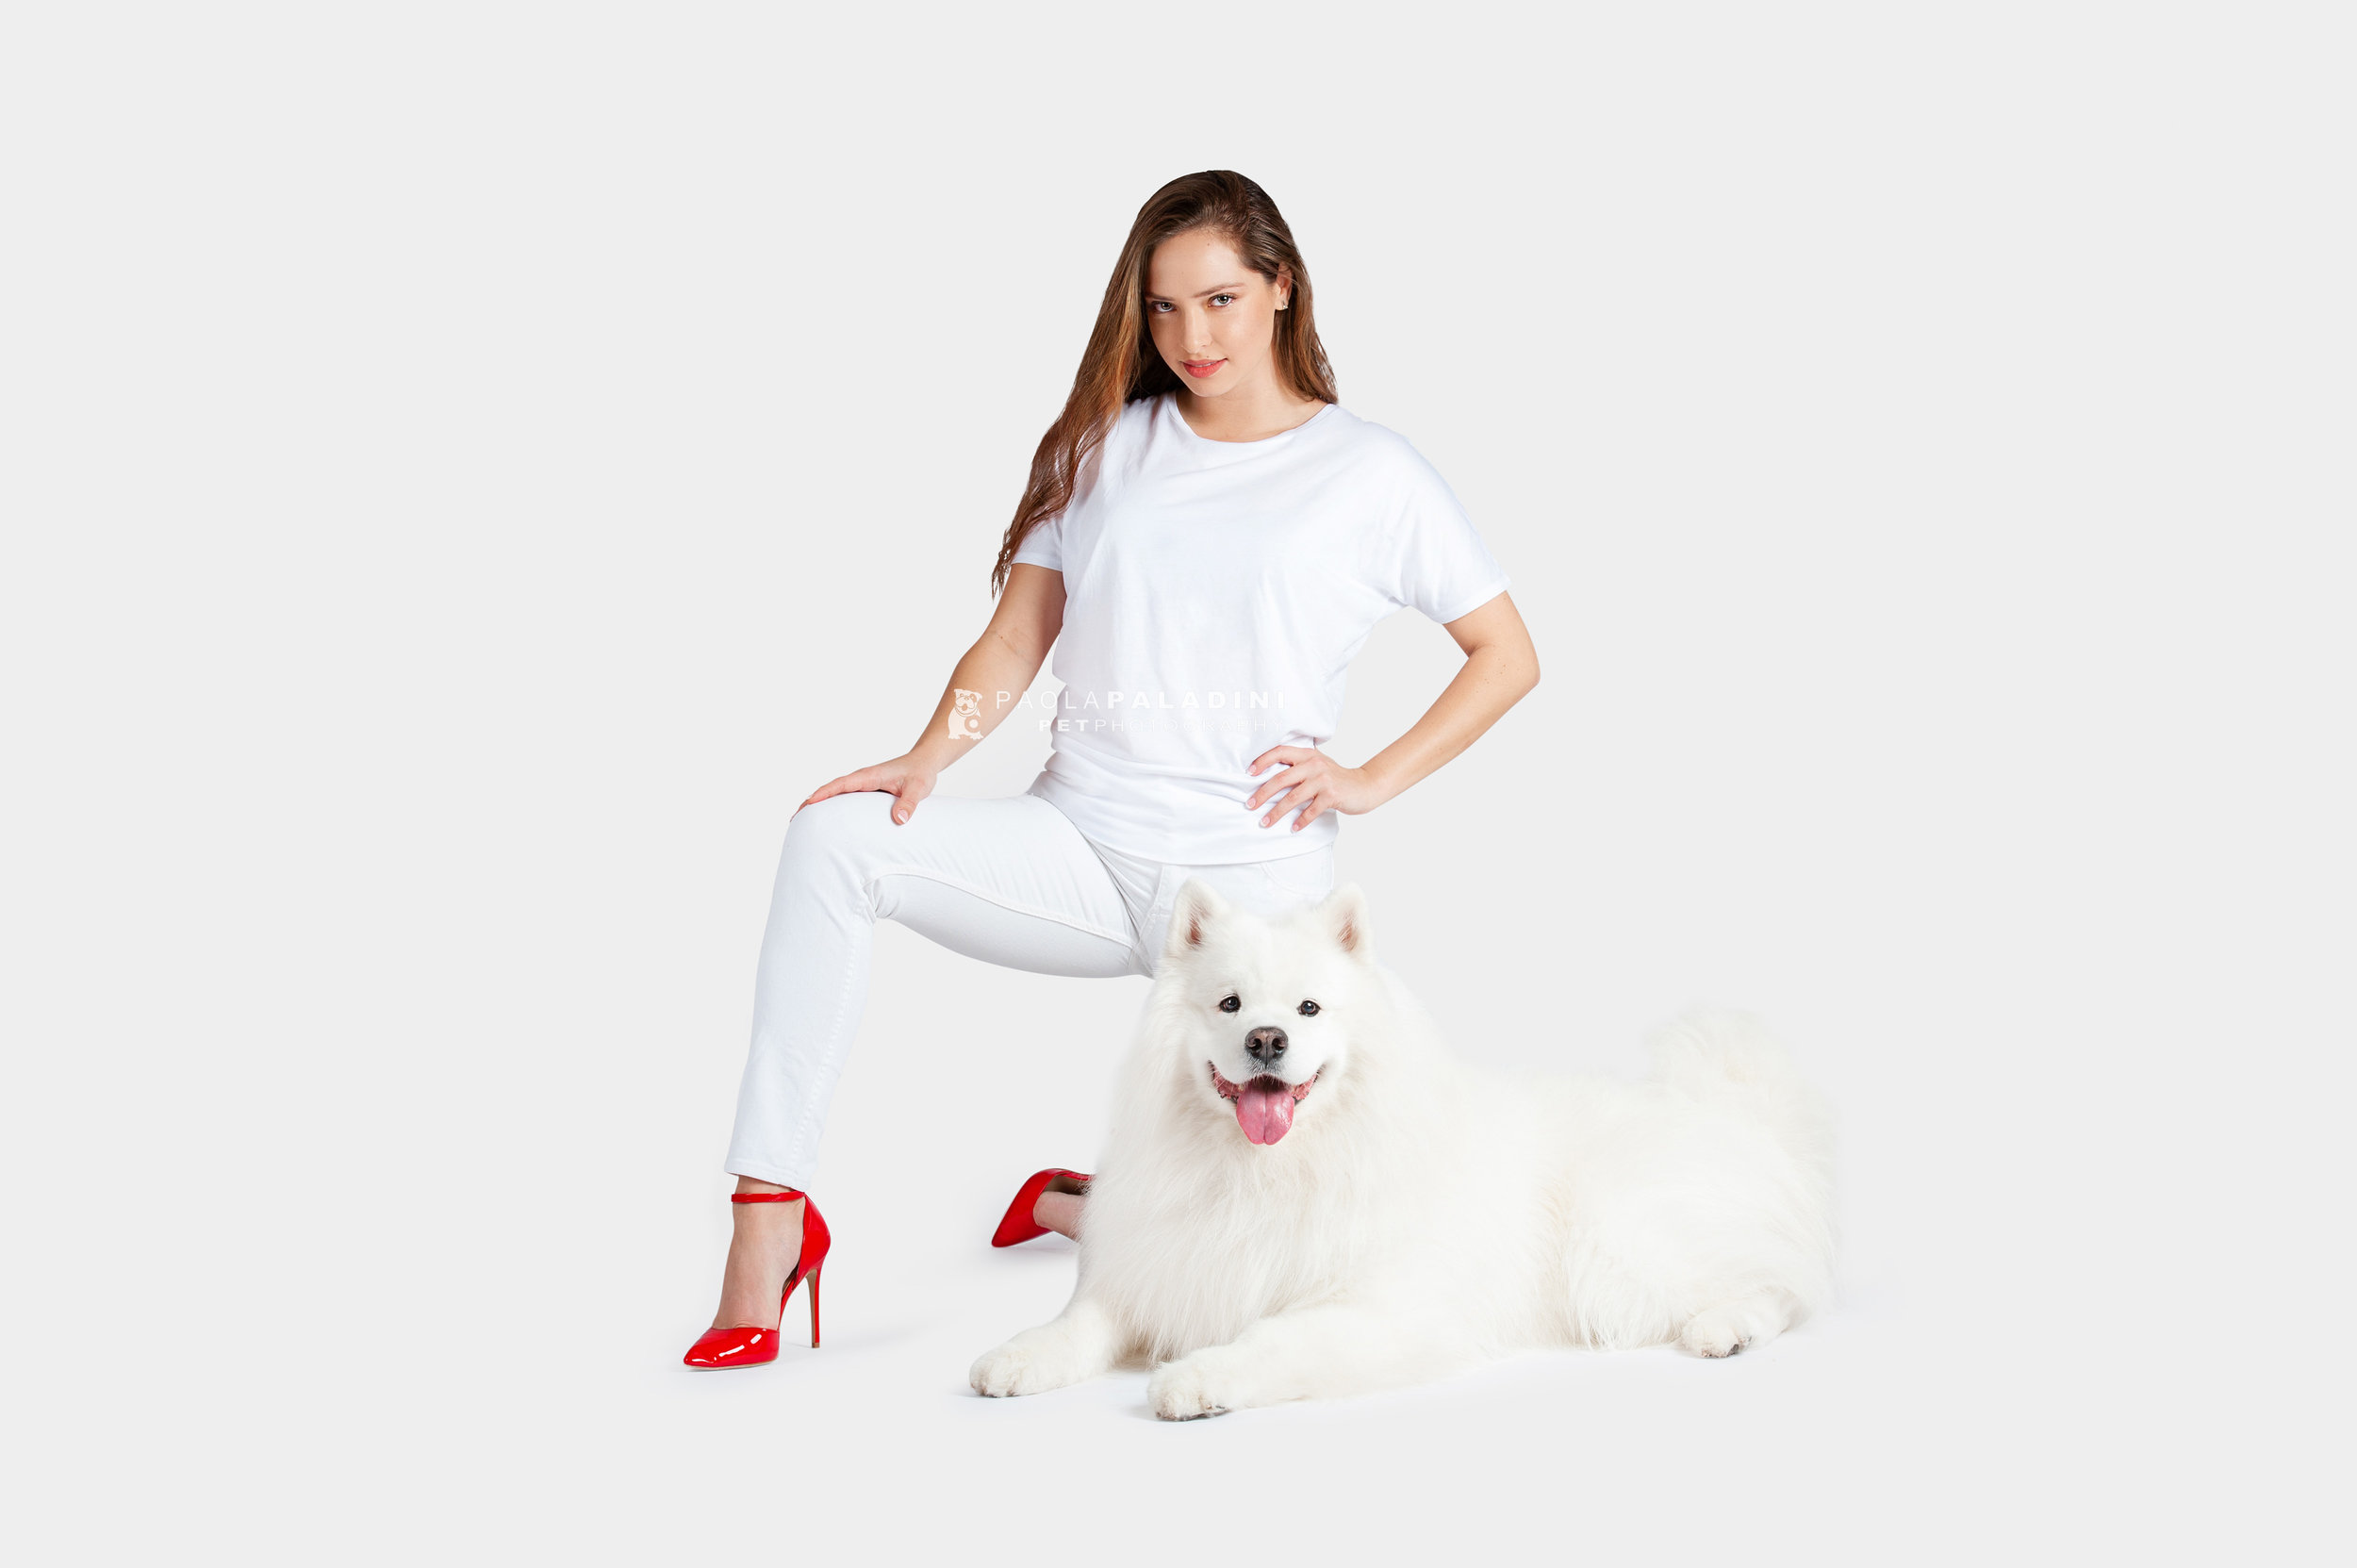 Paola-Paladini-White-on-White-Hounds-and-Heels-Samoyed-Red-Heels